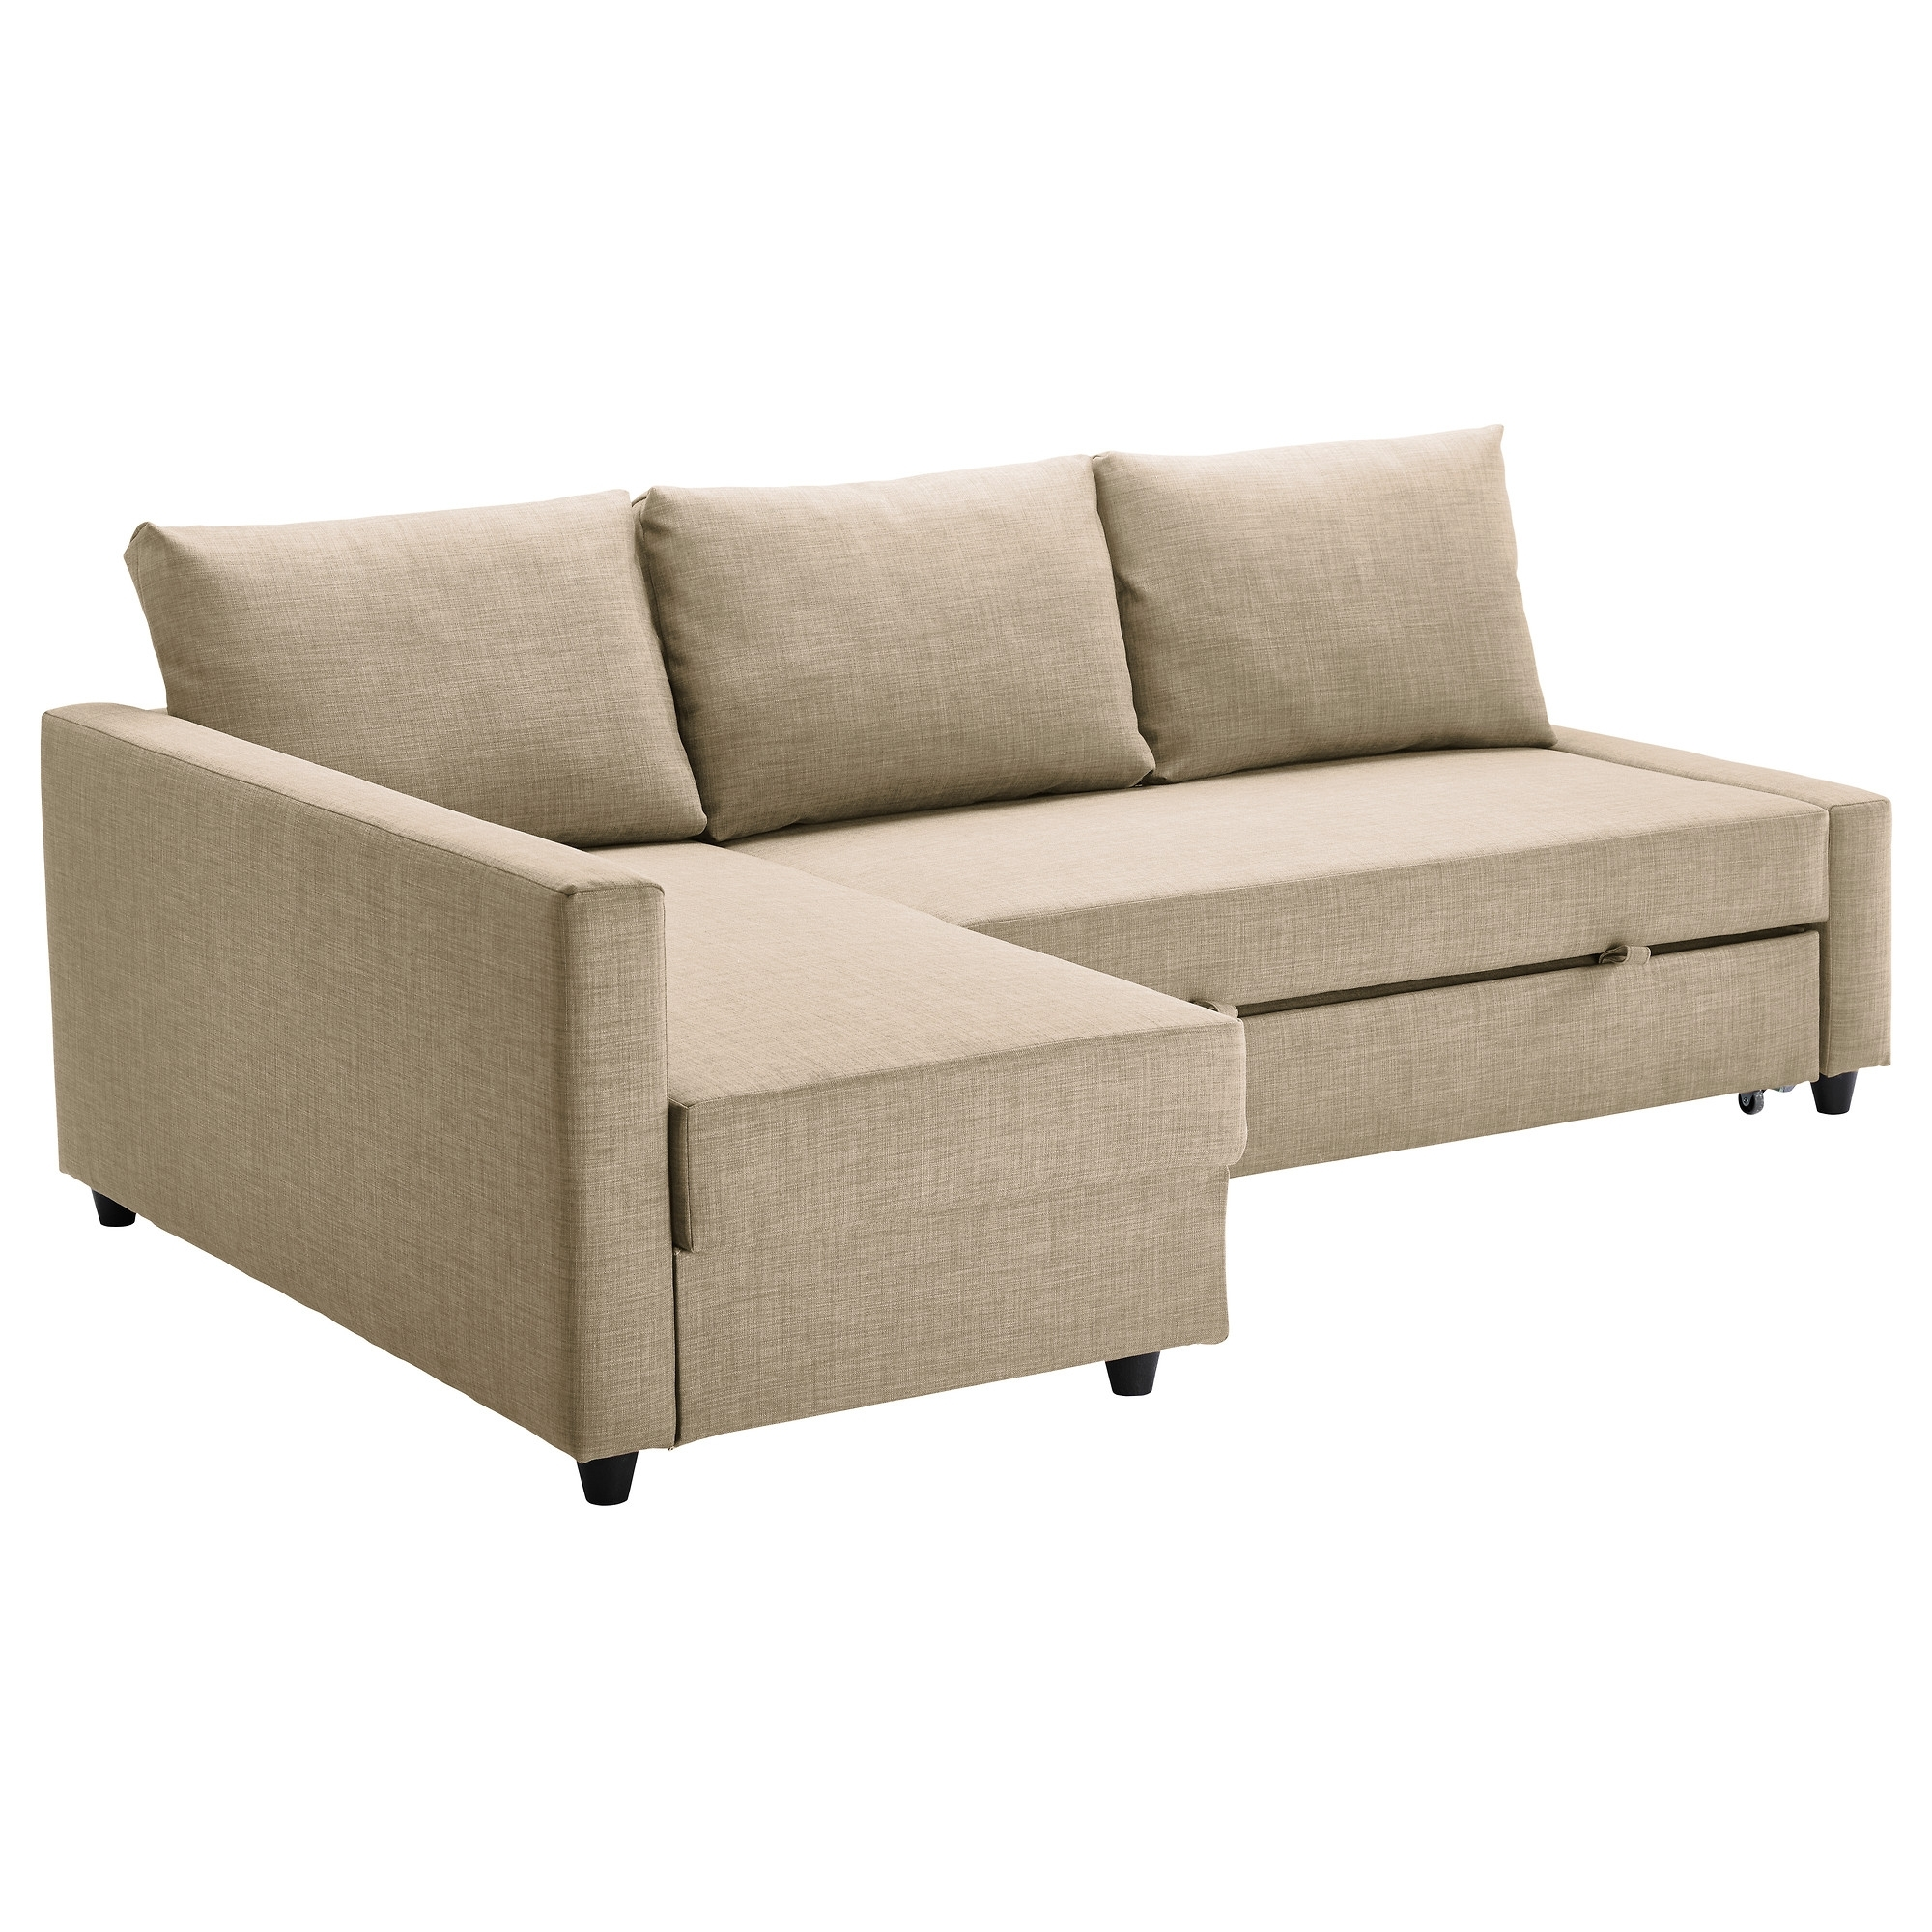 Most Recent Sectional Sofas At Ikea In Friheten Sleeper Sectional,3 Seat W/storage – Skiftebo Dark Gray (View 10 of 20)